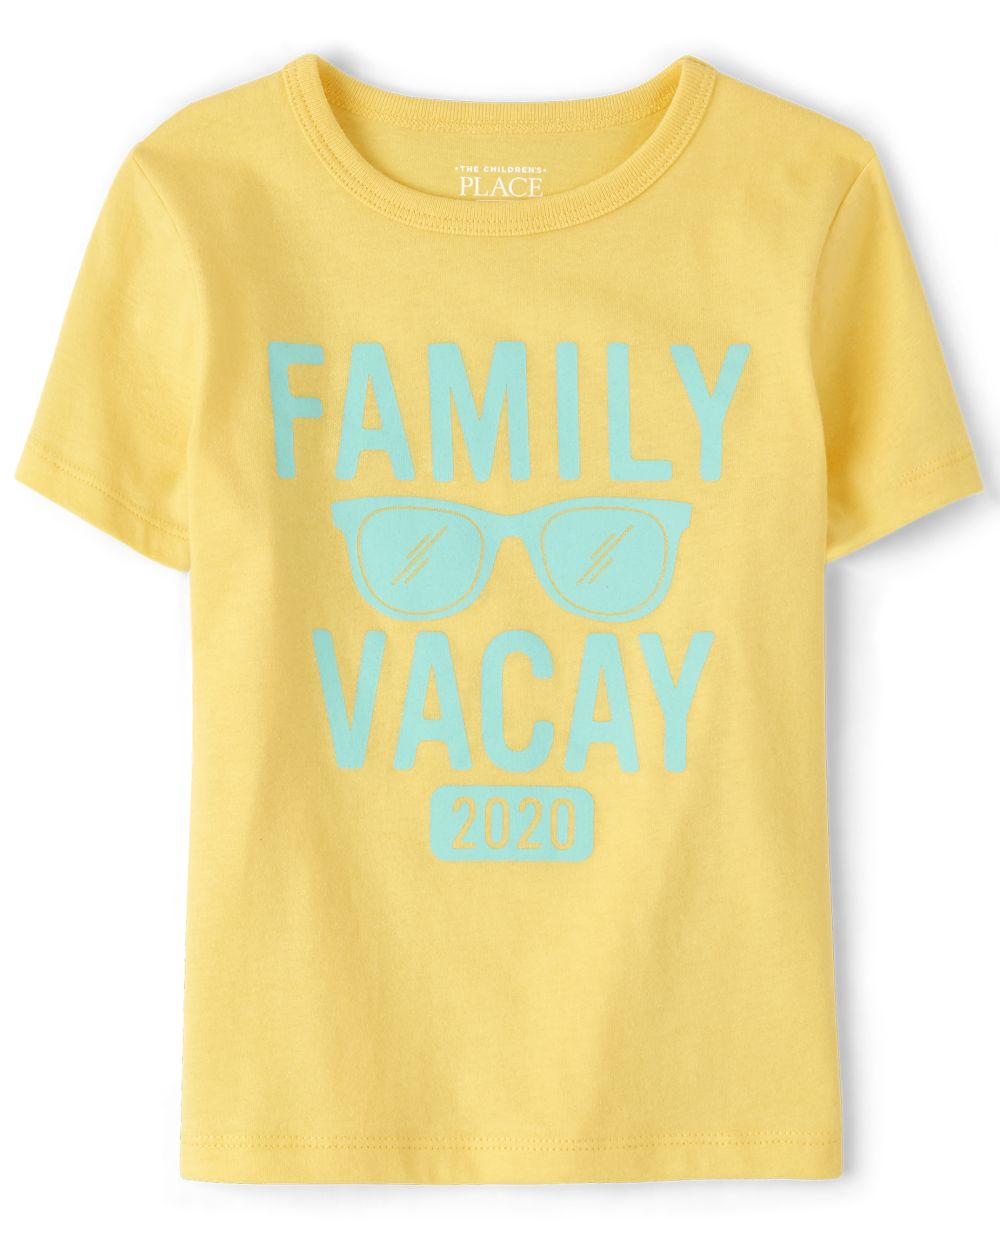 Unisex Baby And Toddler Matching Family Vacay 2020 Graphic Tee